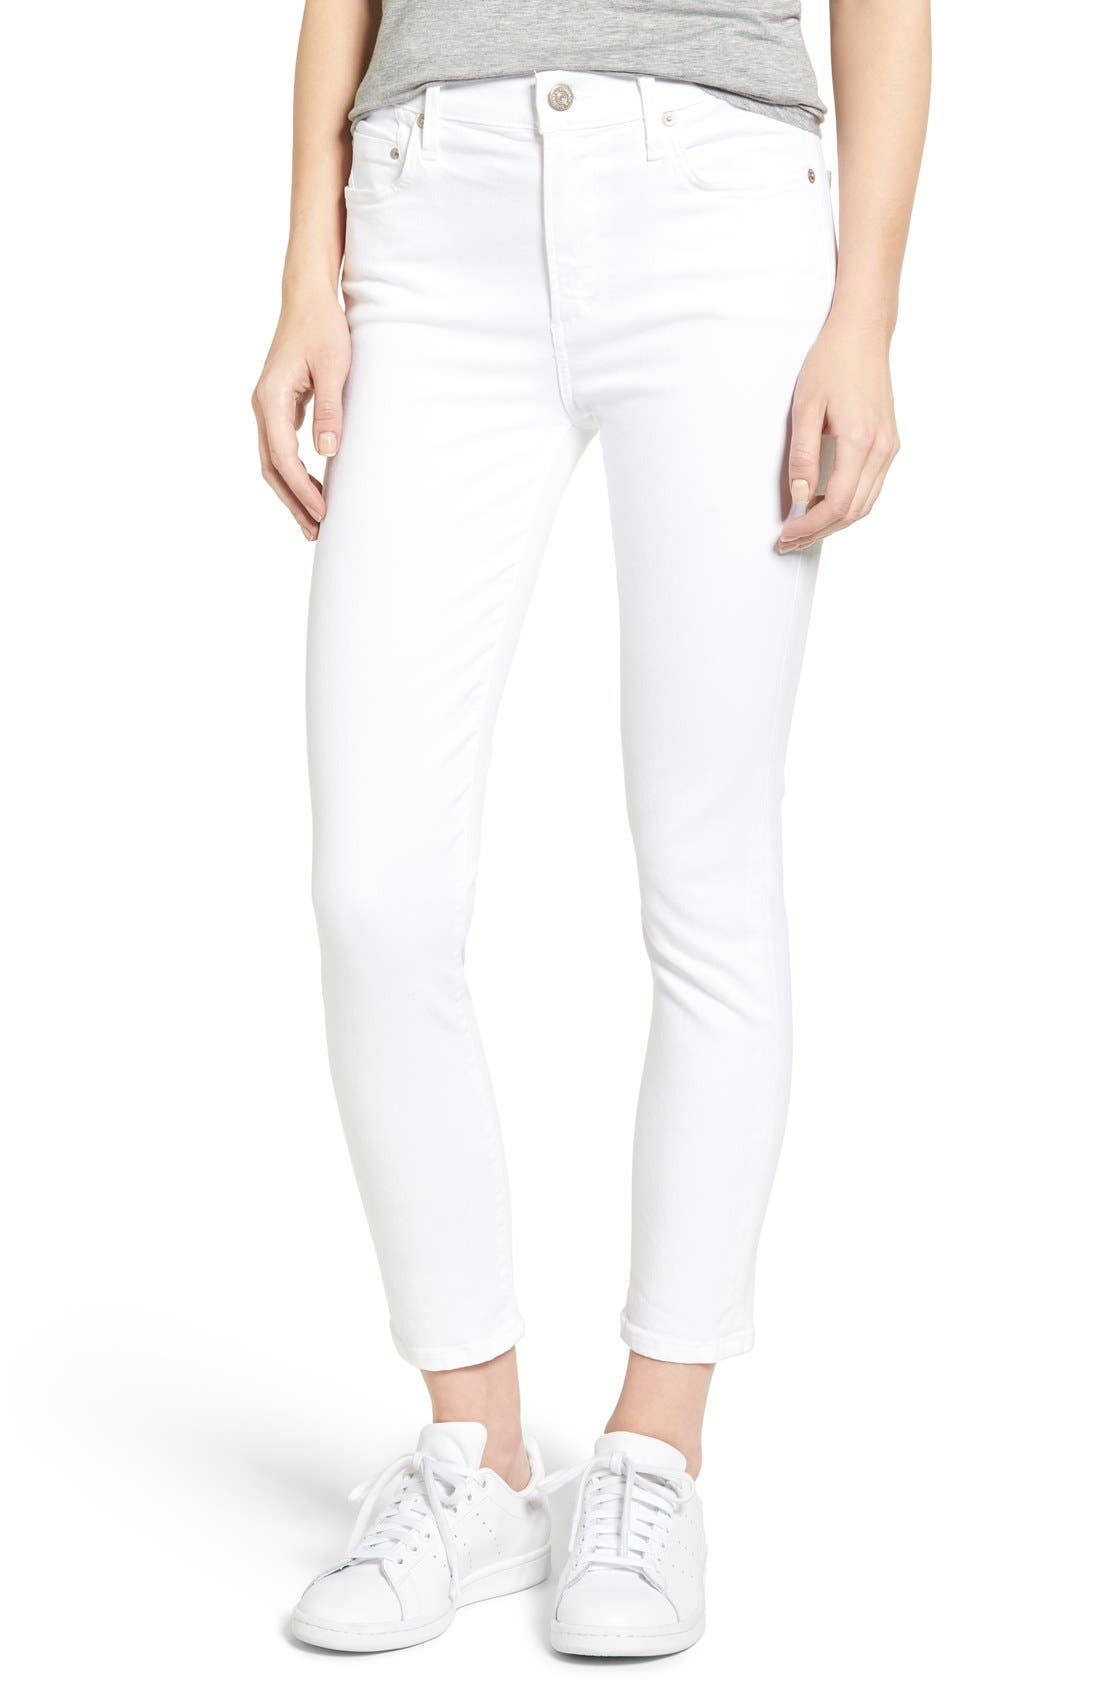 Alternate Image 1 Selected - Citizens of Humanity Rocket High Waist Crop Skinny Jeans (Sculpt White)